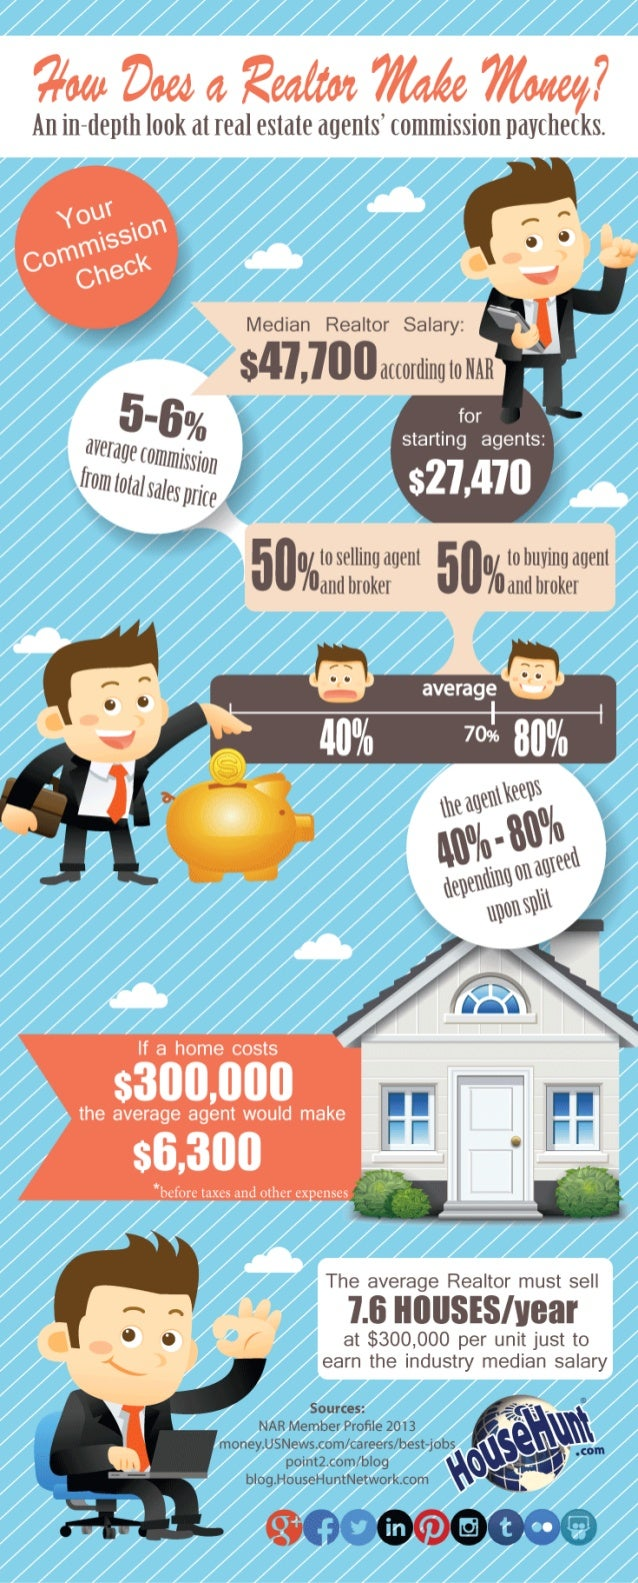 Wow flied cl Mm 7%6lé€_7%0ll€¢f.7  An in-depth look at real estate agents' (0lllllllSSl0ll paychecks.   starting agents:   ...